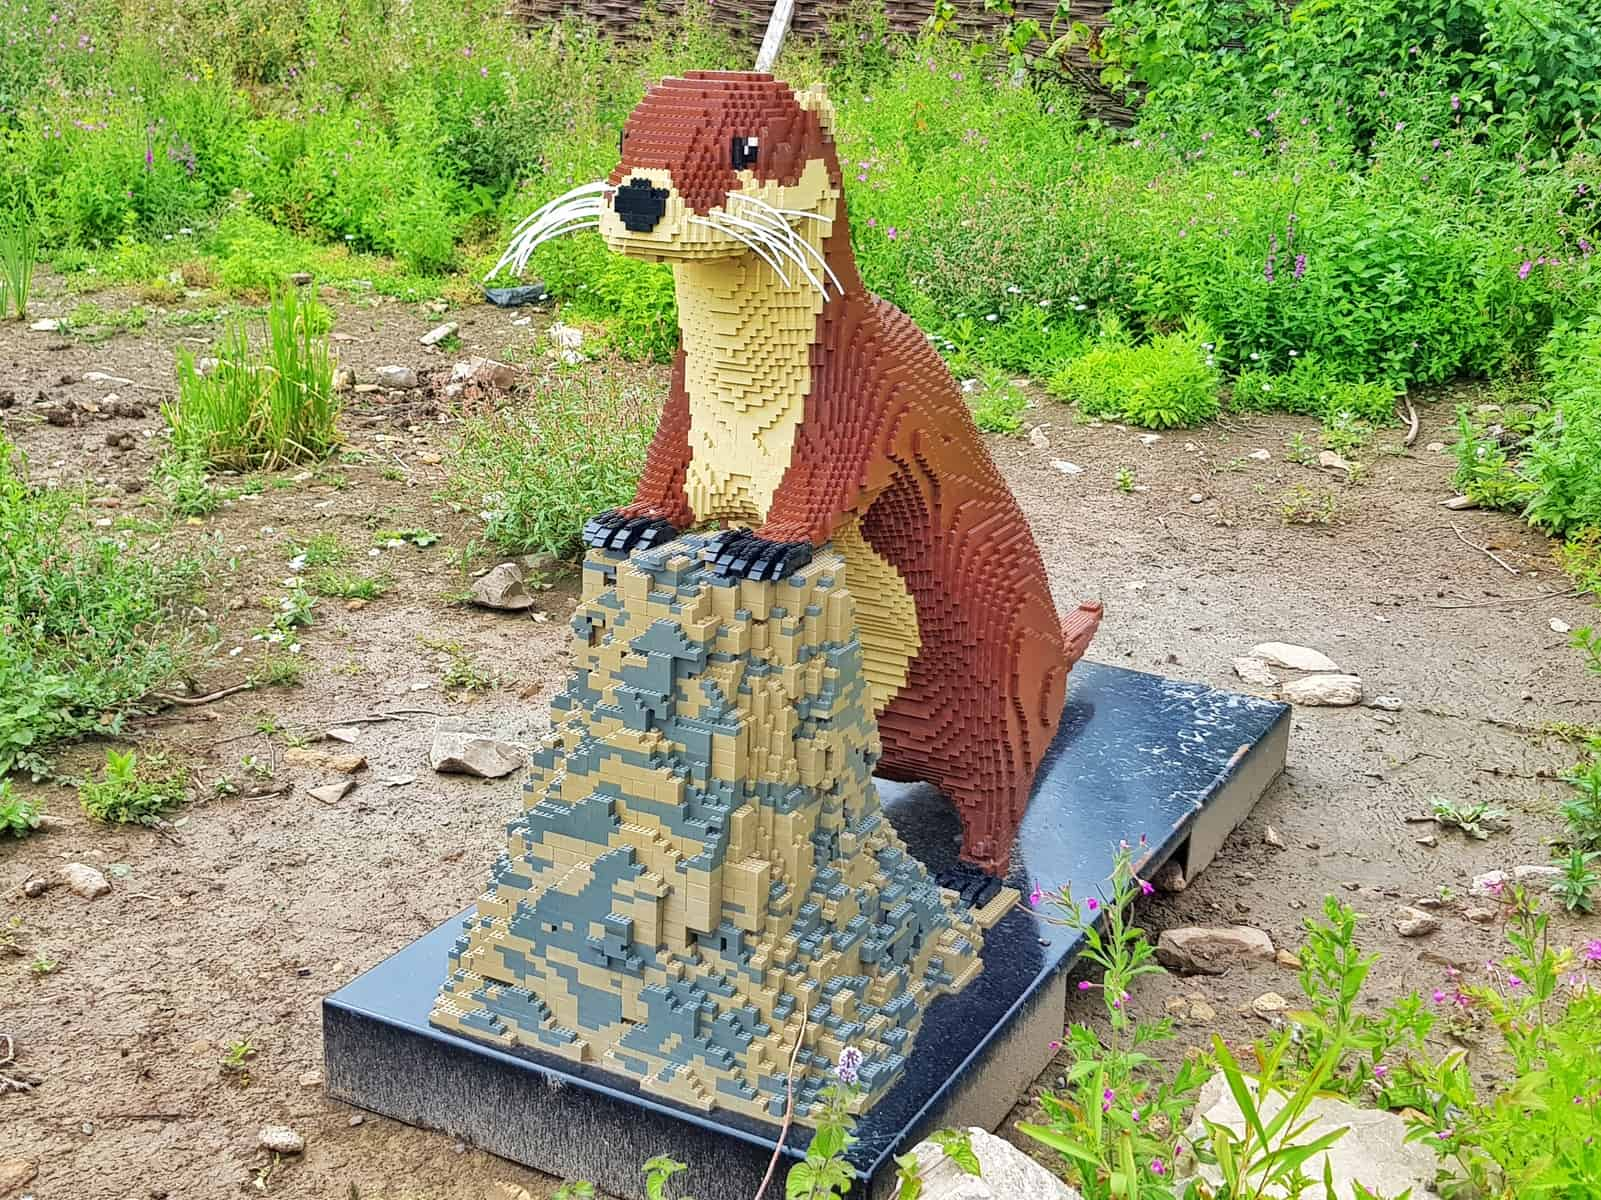 WWT Slimbridge, Gloucestershire - giant lego otter